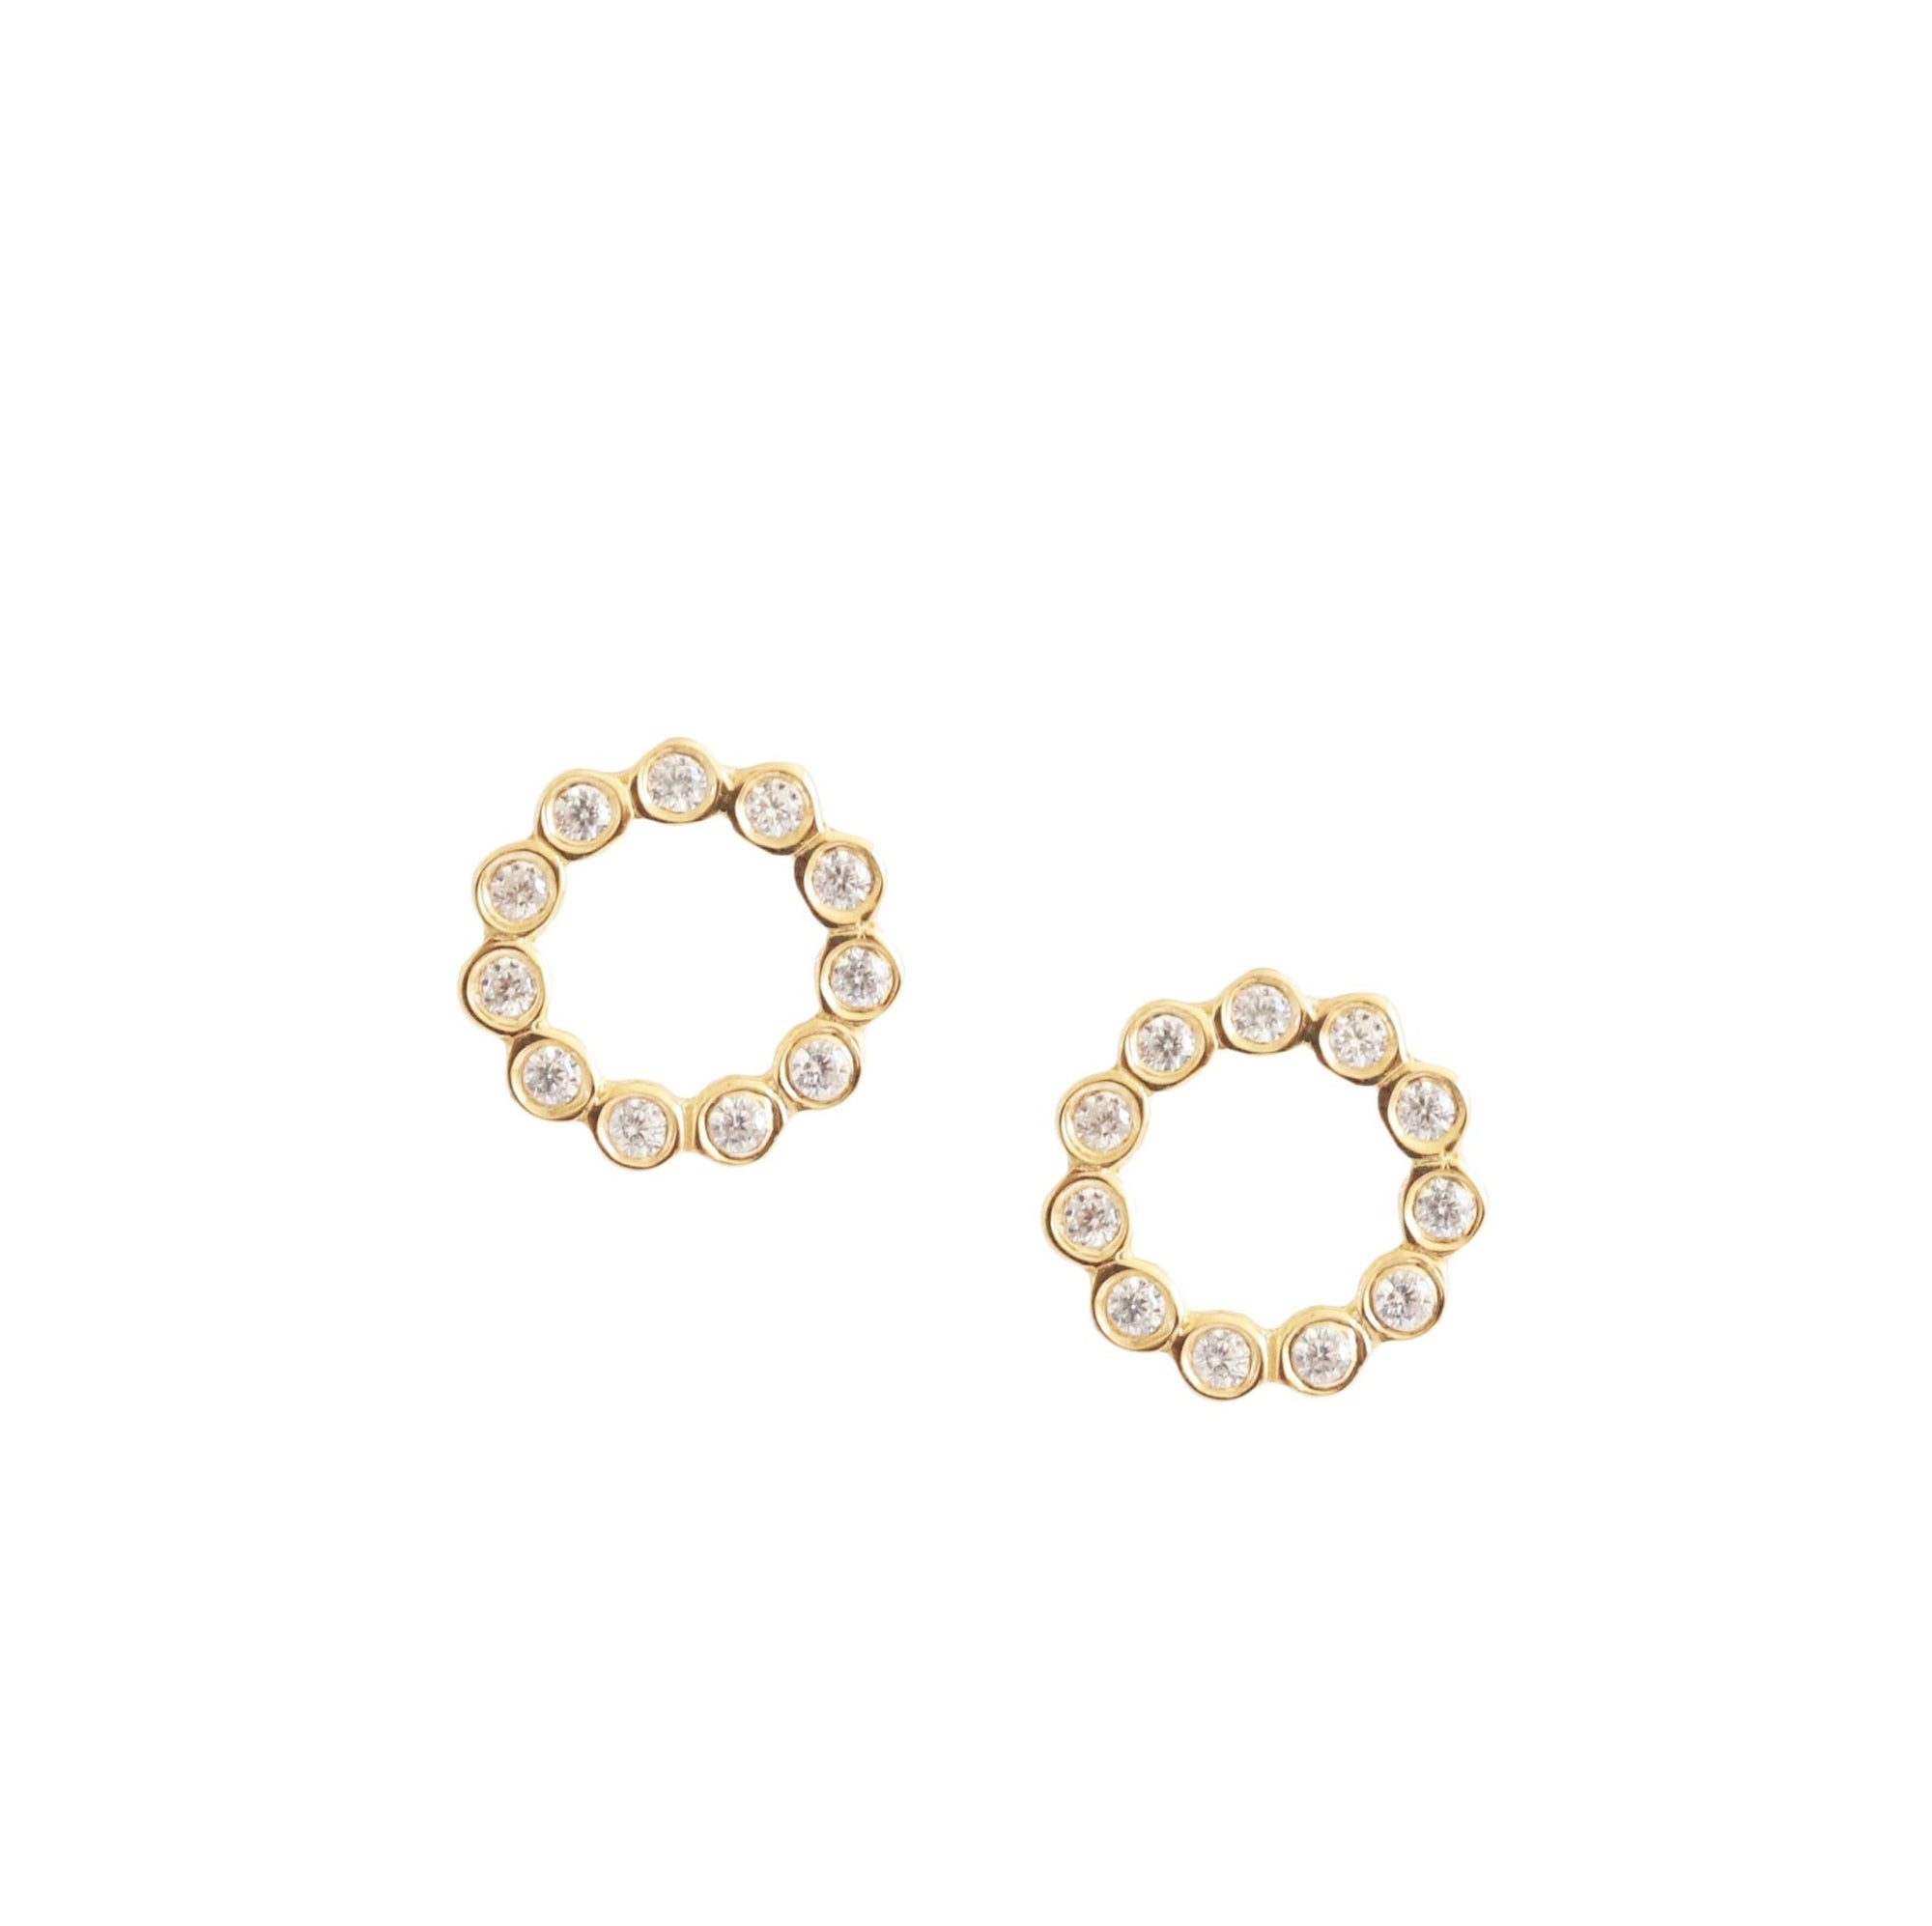 FRAICHE INSPIRE HOOP EARRINGS - CUBIC ZIRCONIA & GOLD - SO PRETTY CARA COTTER